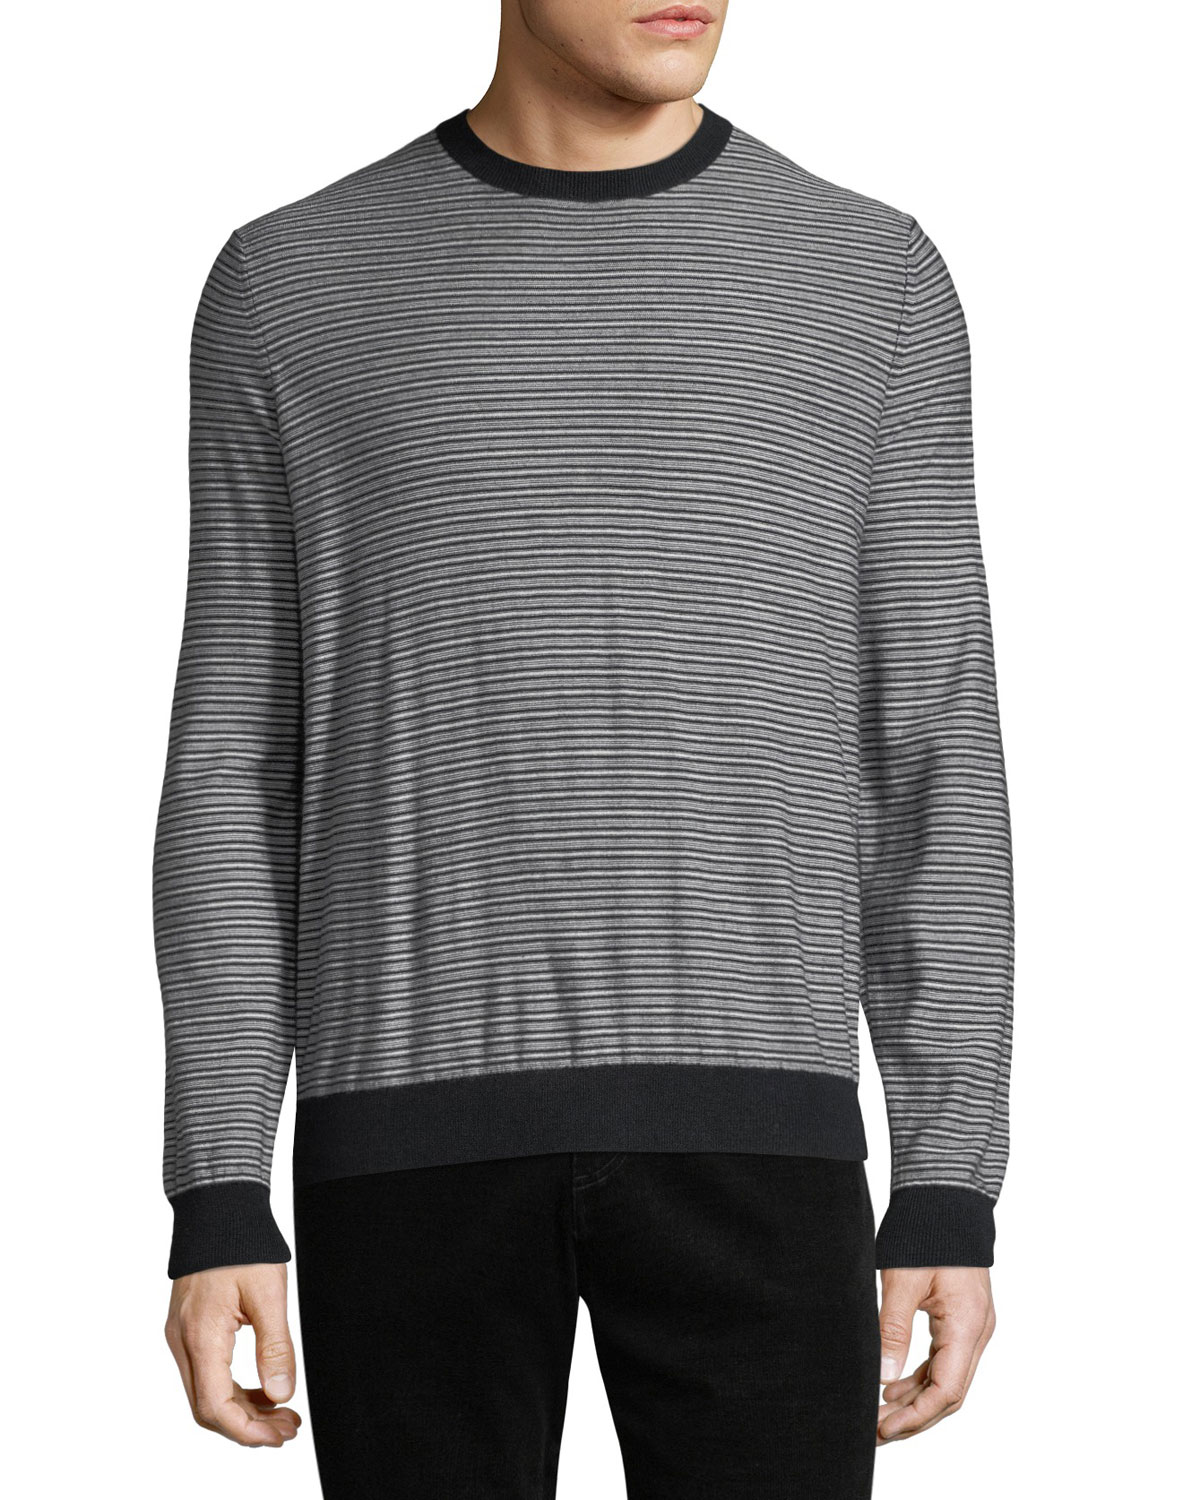 2580457832b6 Vince Men's Striped Wool-Cashmere Sweater | Neiman Marcus